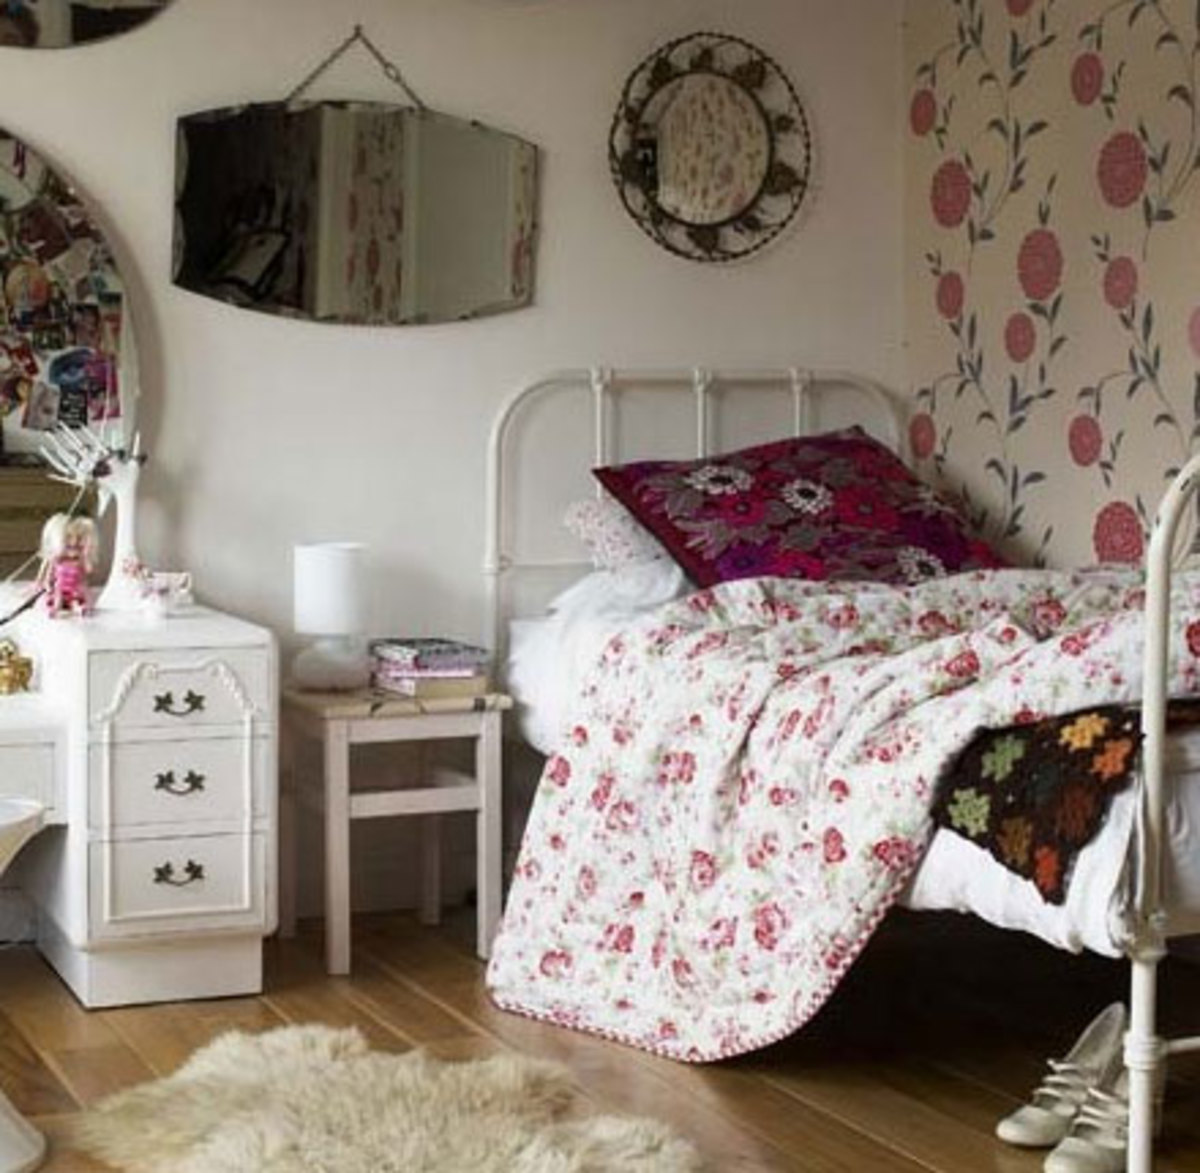 20 teenage girl bedroom decorating ideas hubpages for Bedroom ideas for girls in their 20s